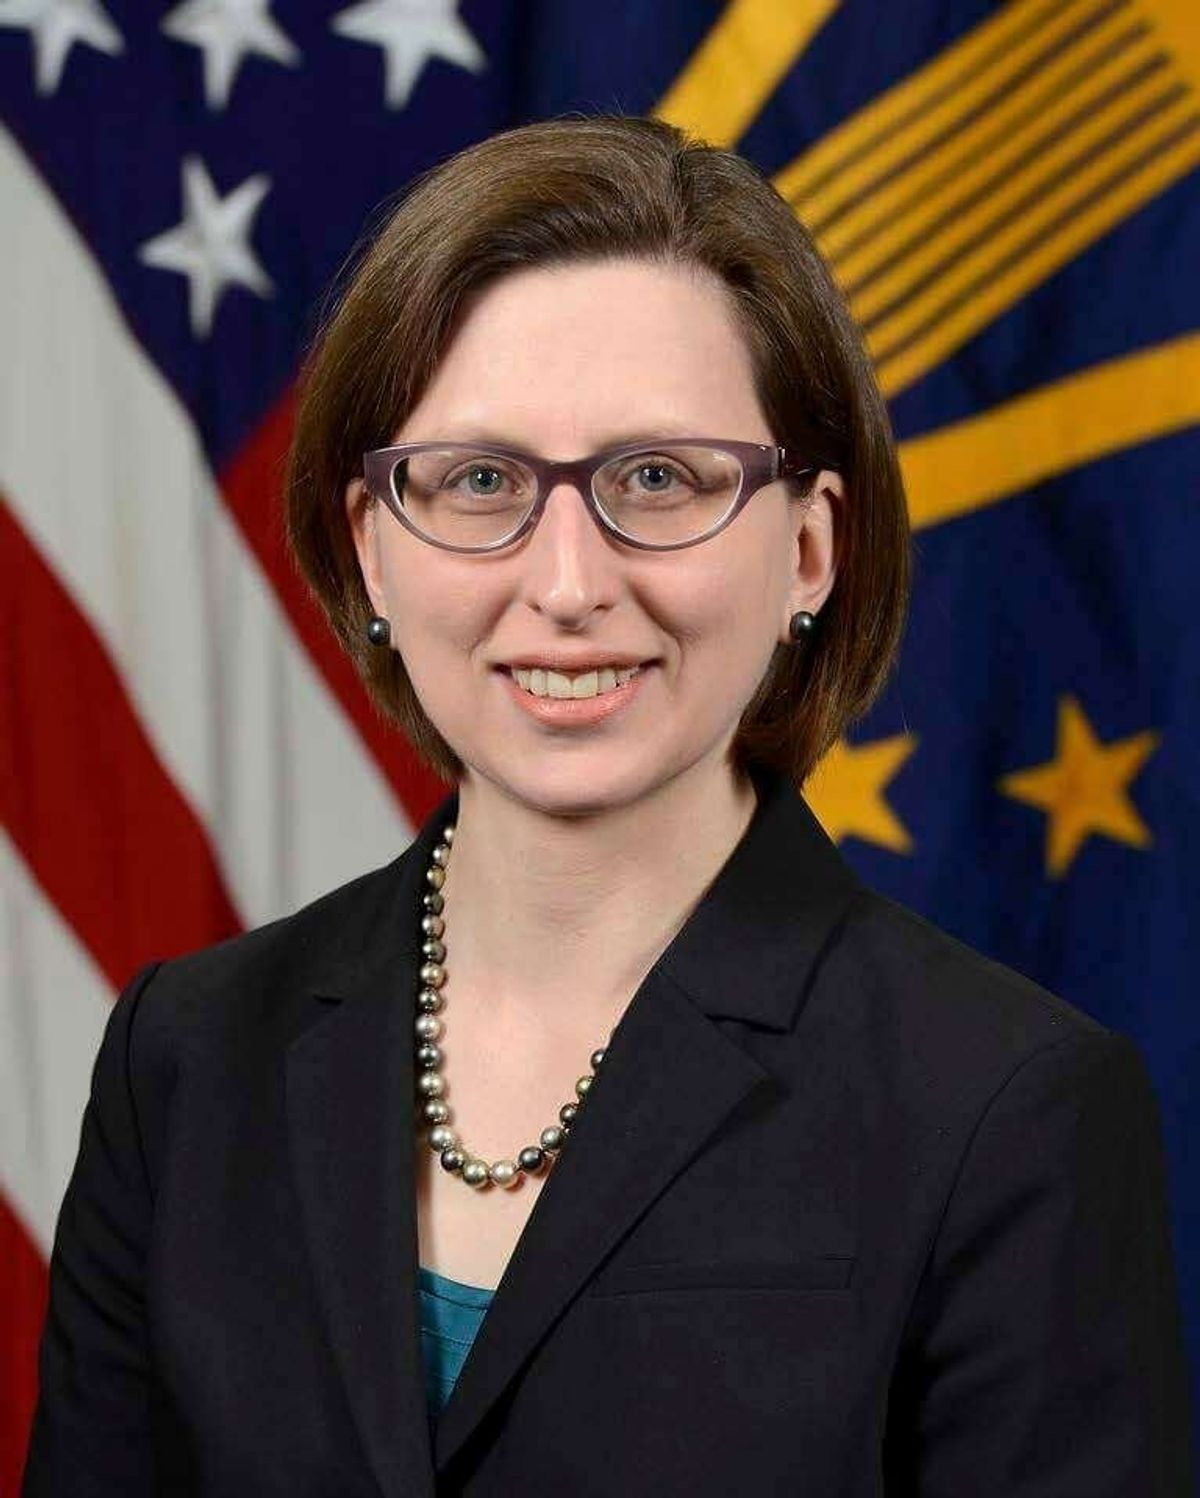 Pentagon Official Overseeing Ukraine Policy to Testify in Impeachment Probe